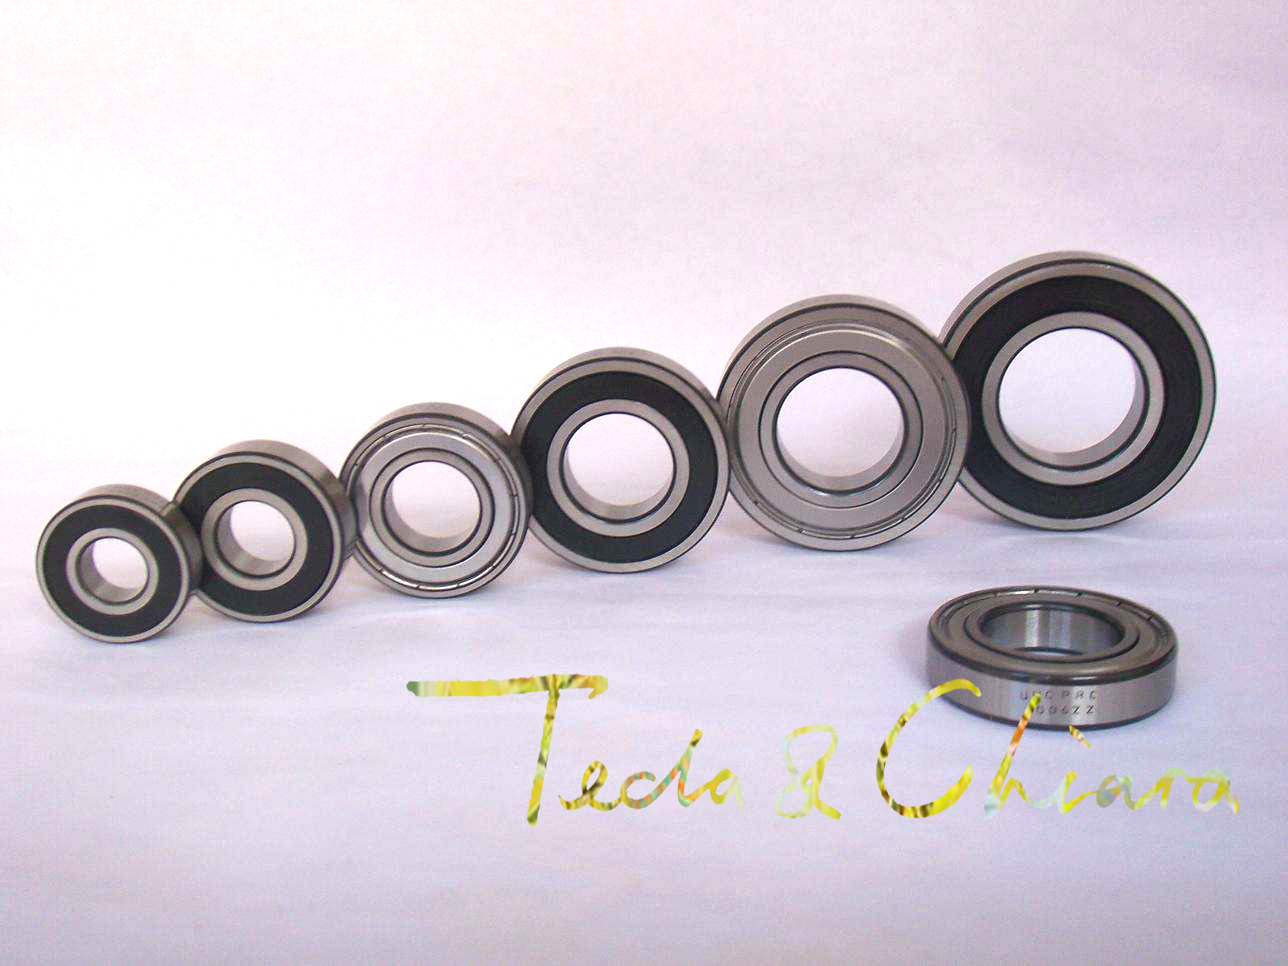 6700 6700ZZ 6700RS 6700-2Z 6700Z 6700-2RS ZZ RS RZ 2RZ Deep Groove Ball Bearings 10 x 15 x 4mm High Quality 6704 6704zz 6704rs 6704 2z 6704z 6704 2rs zz rs rz 2rz deep groove ball bearings 20 x 27 x 4mm high quality